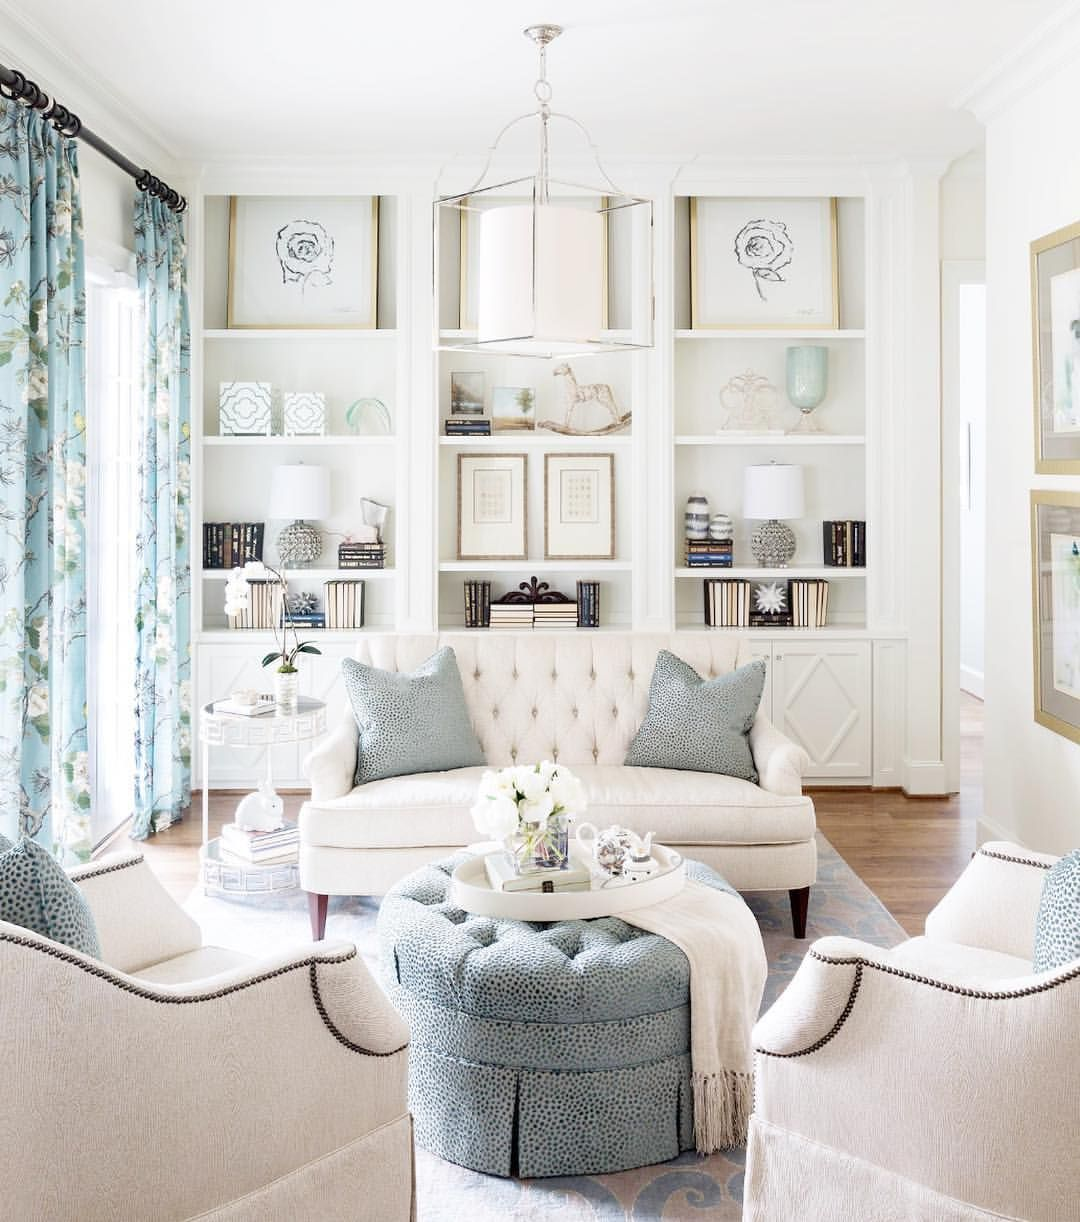 Living room seating area | Decor | Pinterest | Living rooms, Room ...